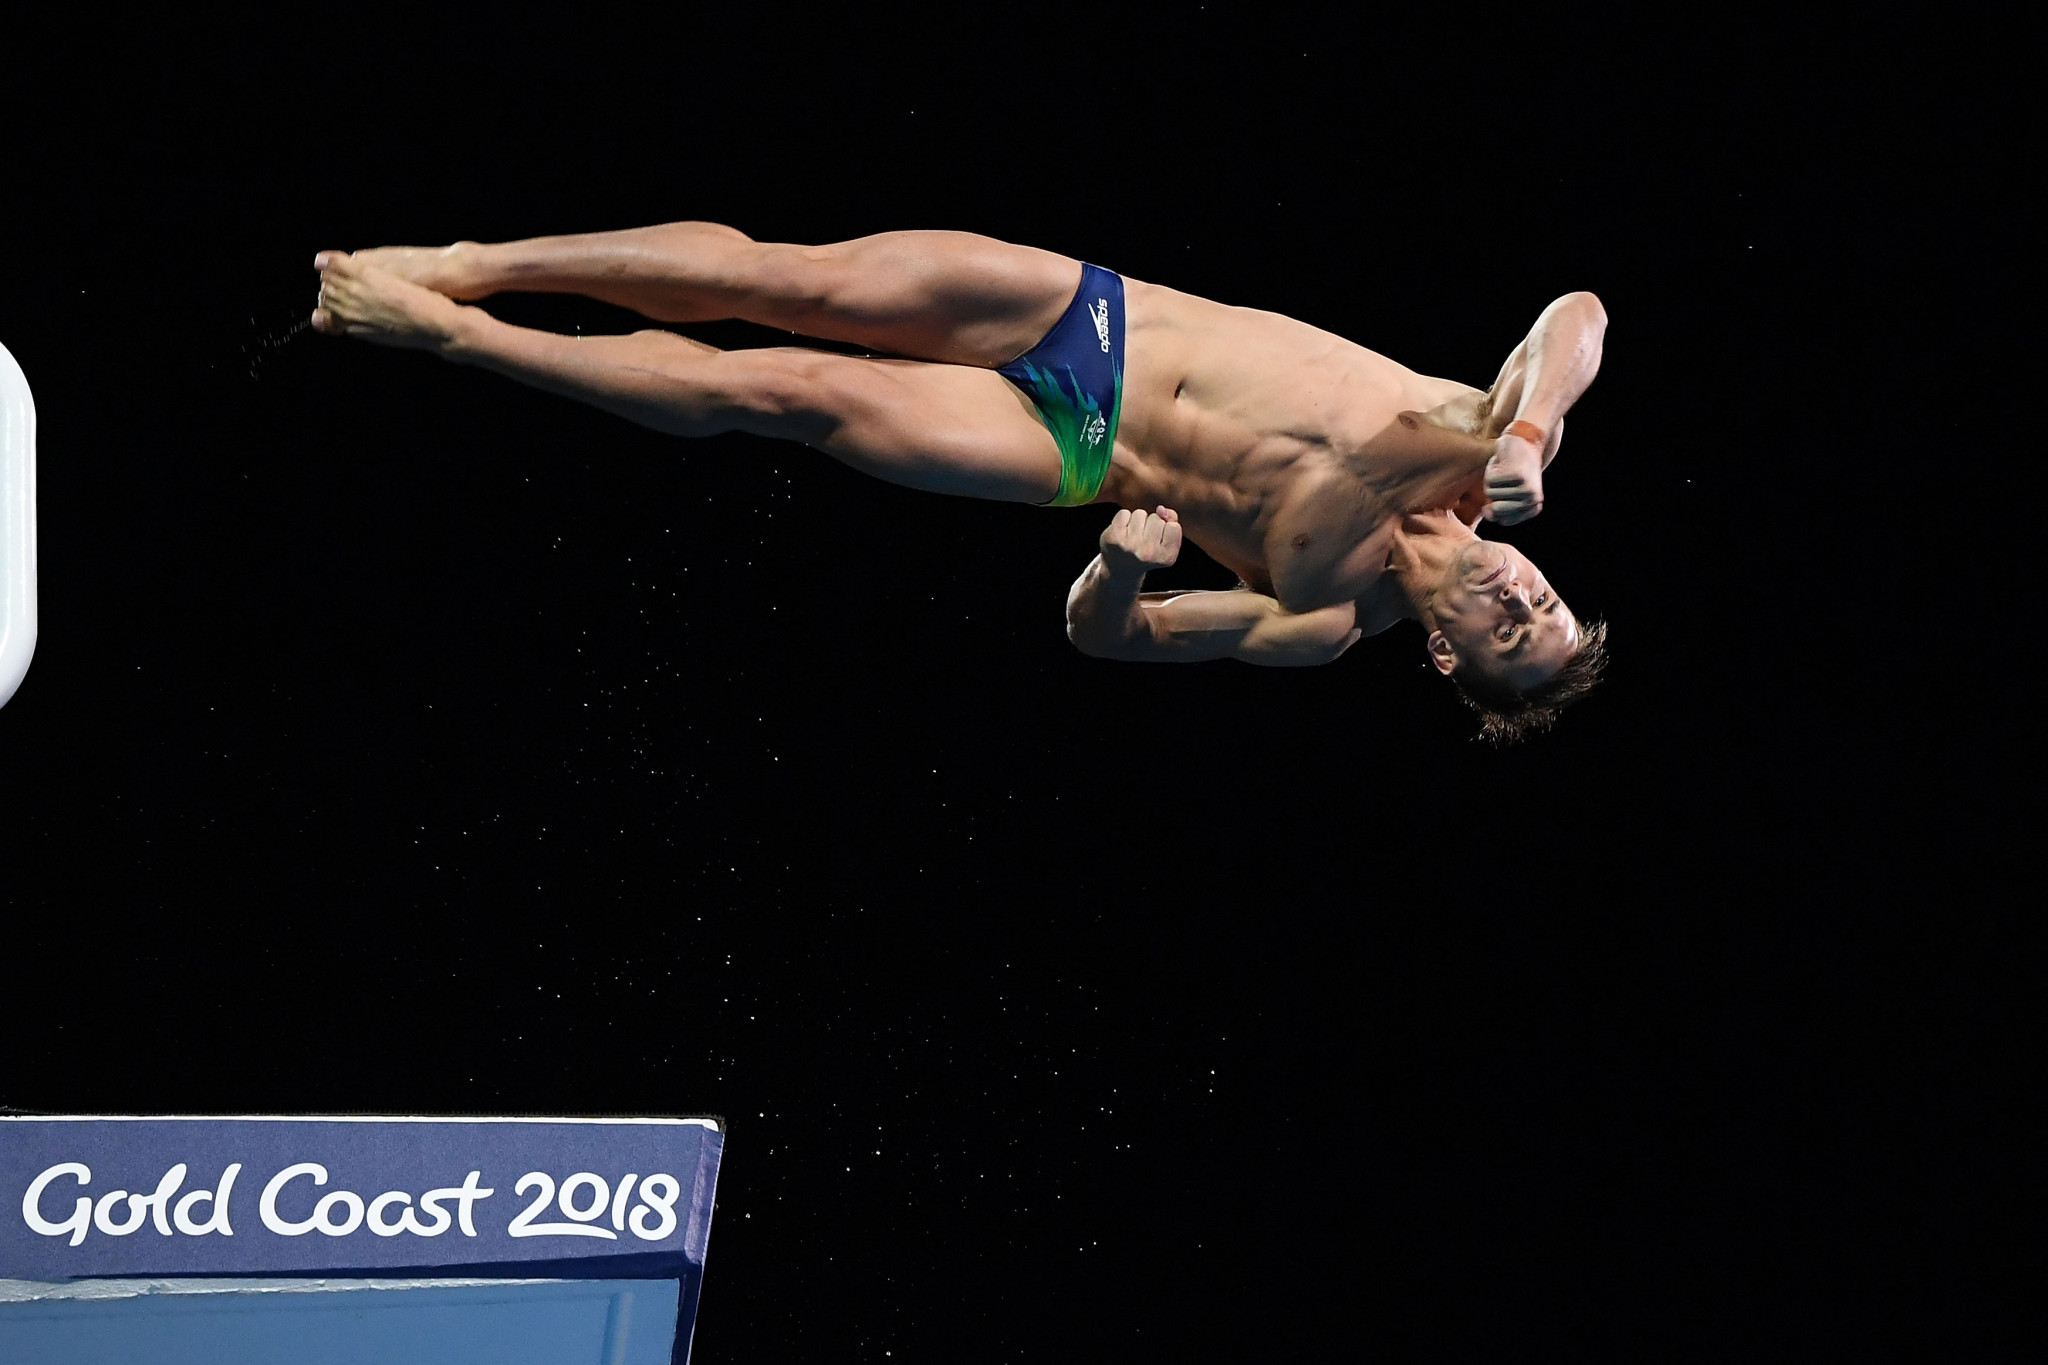 Gold Coast diver wins Commonwealth Games gold medal